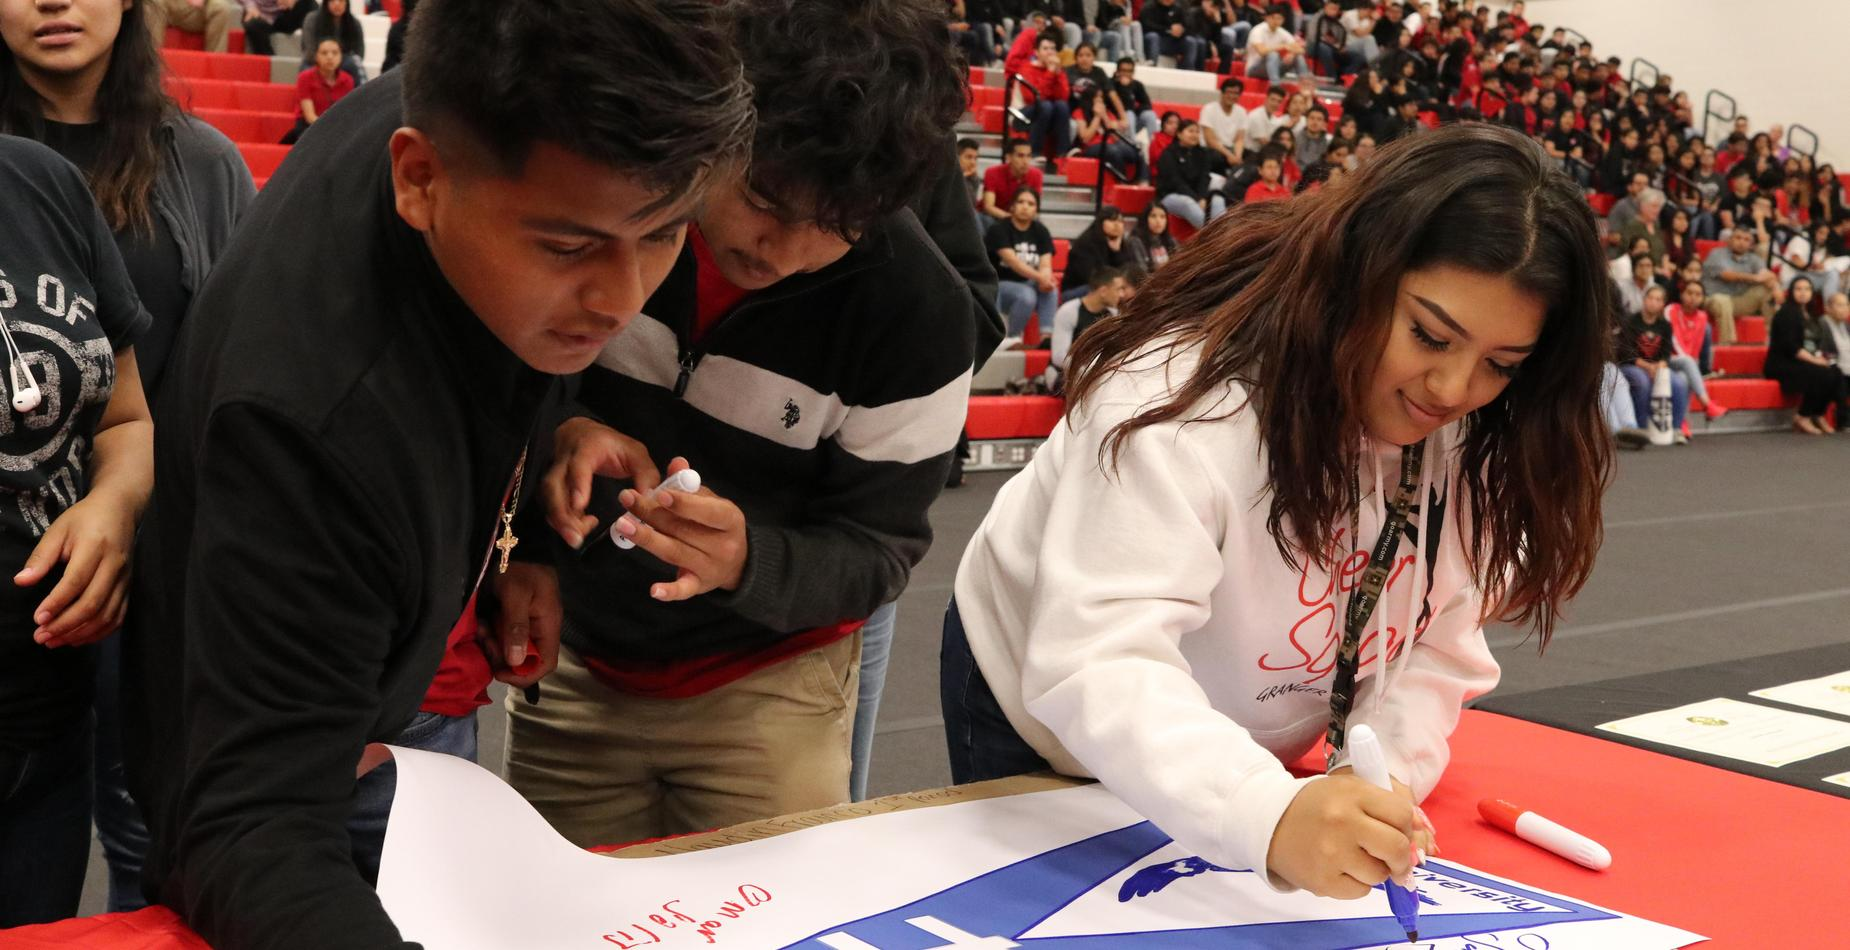 Students sign posters